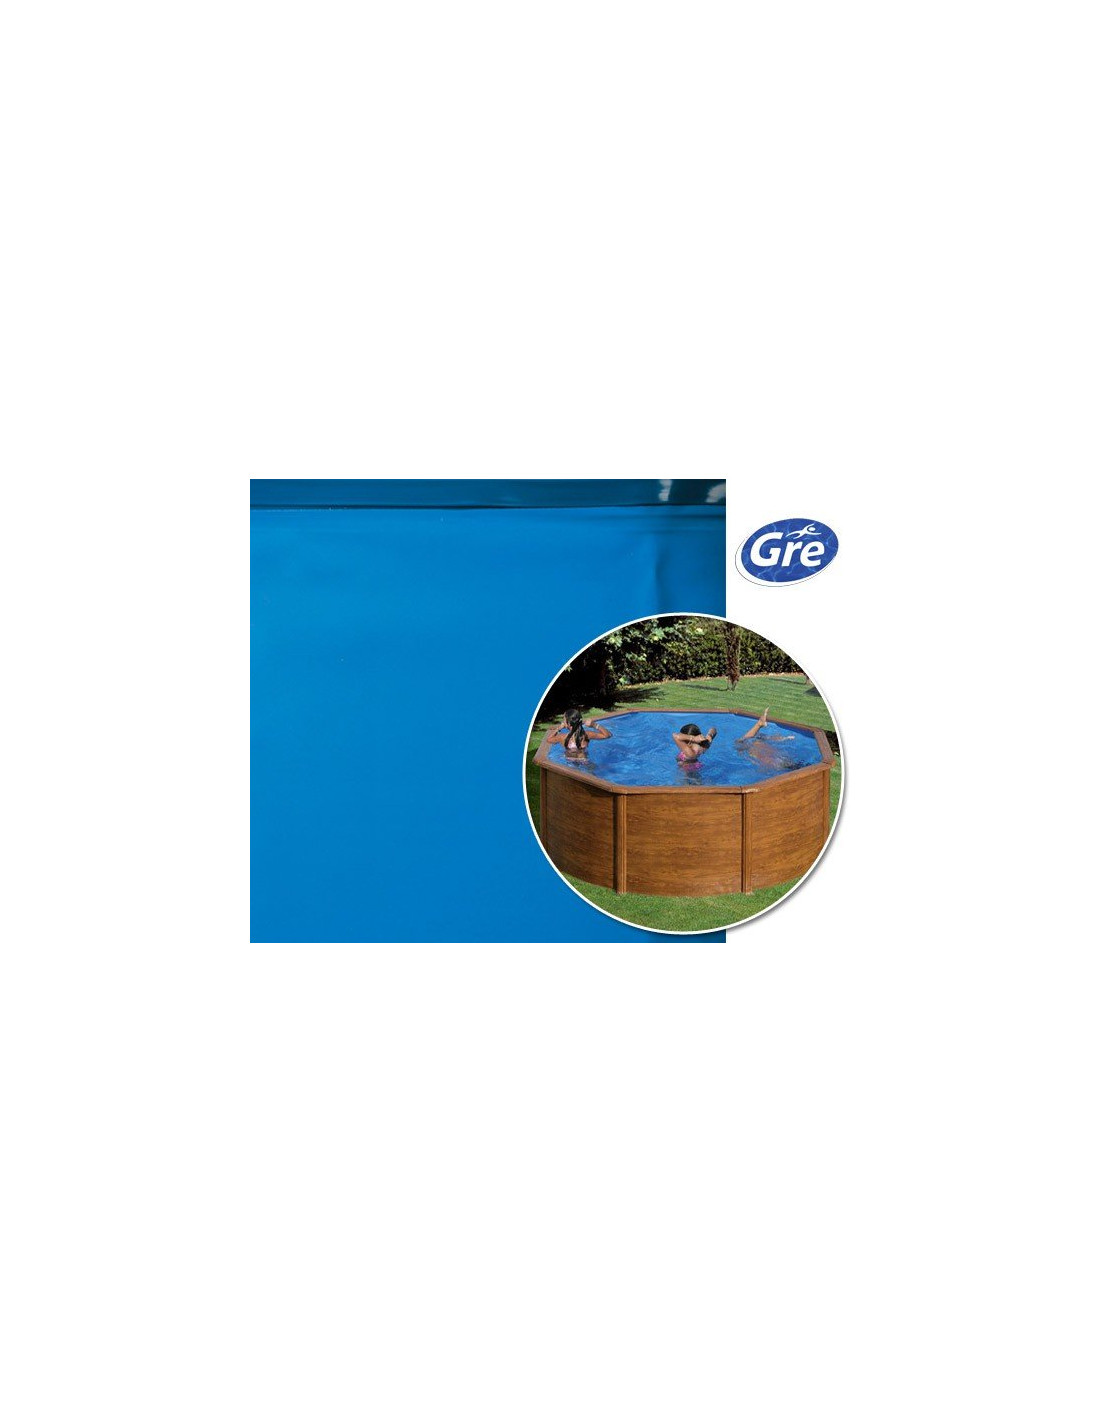 Liner piscine hors sol ronde gre pool coloris bleu for Reparation liner piscine hors sol